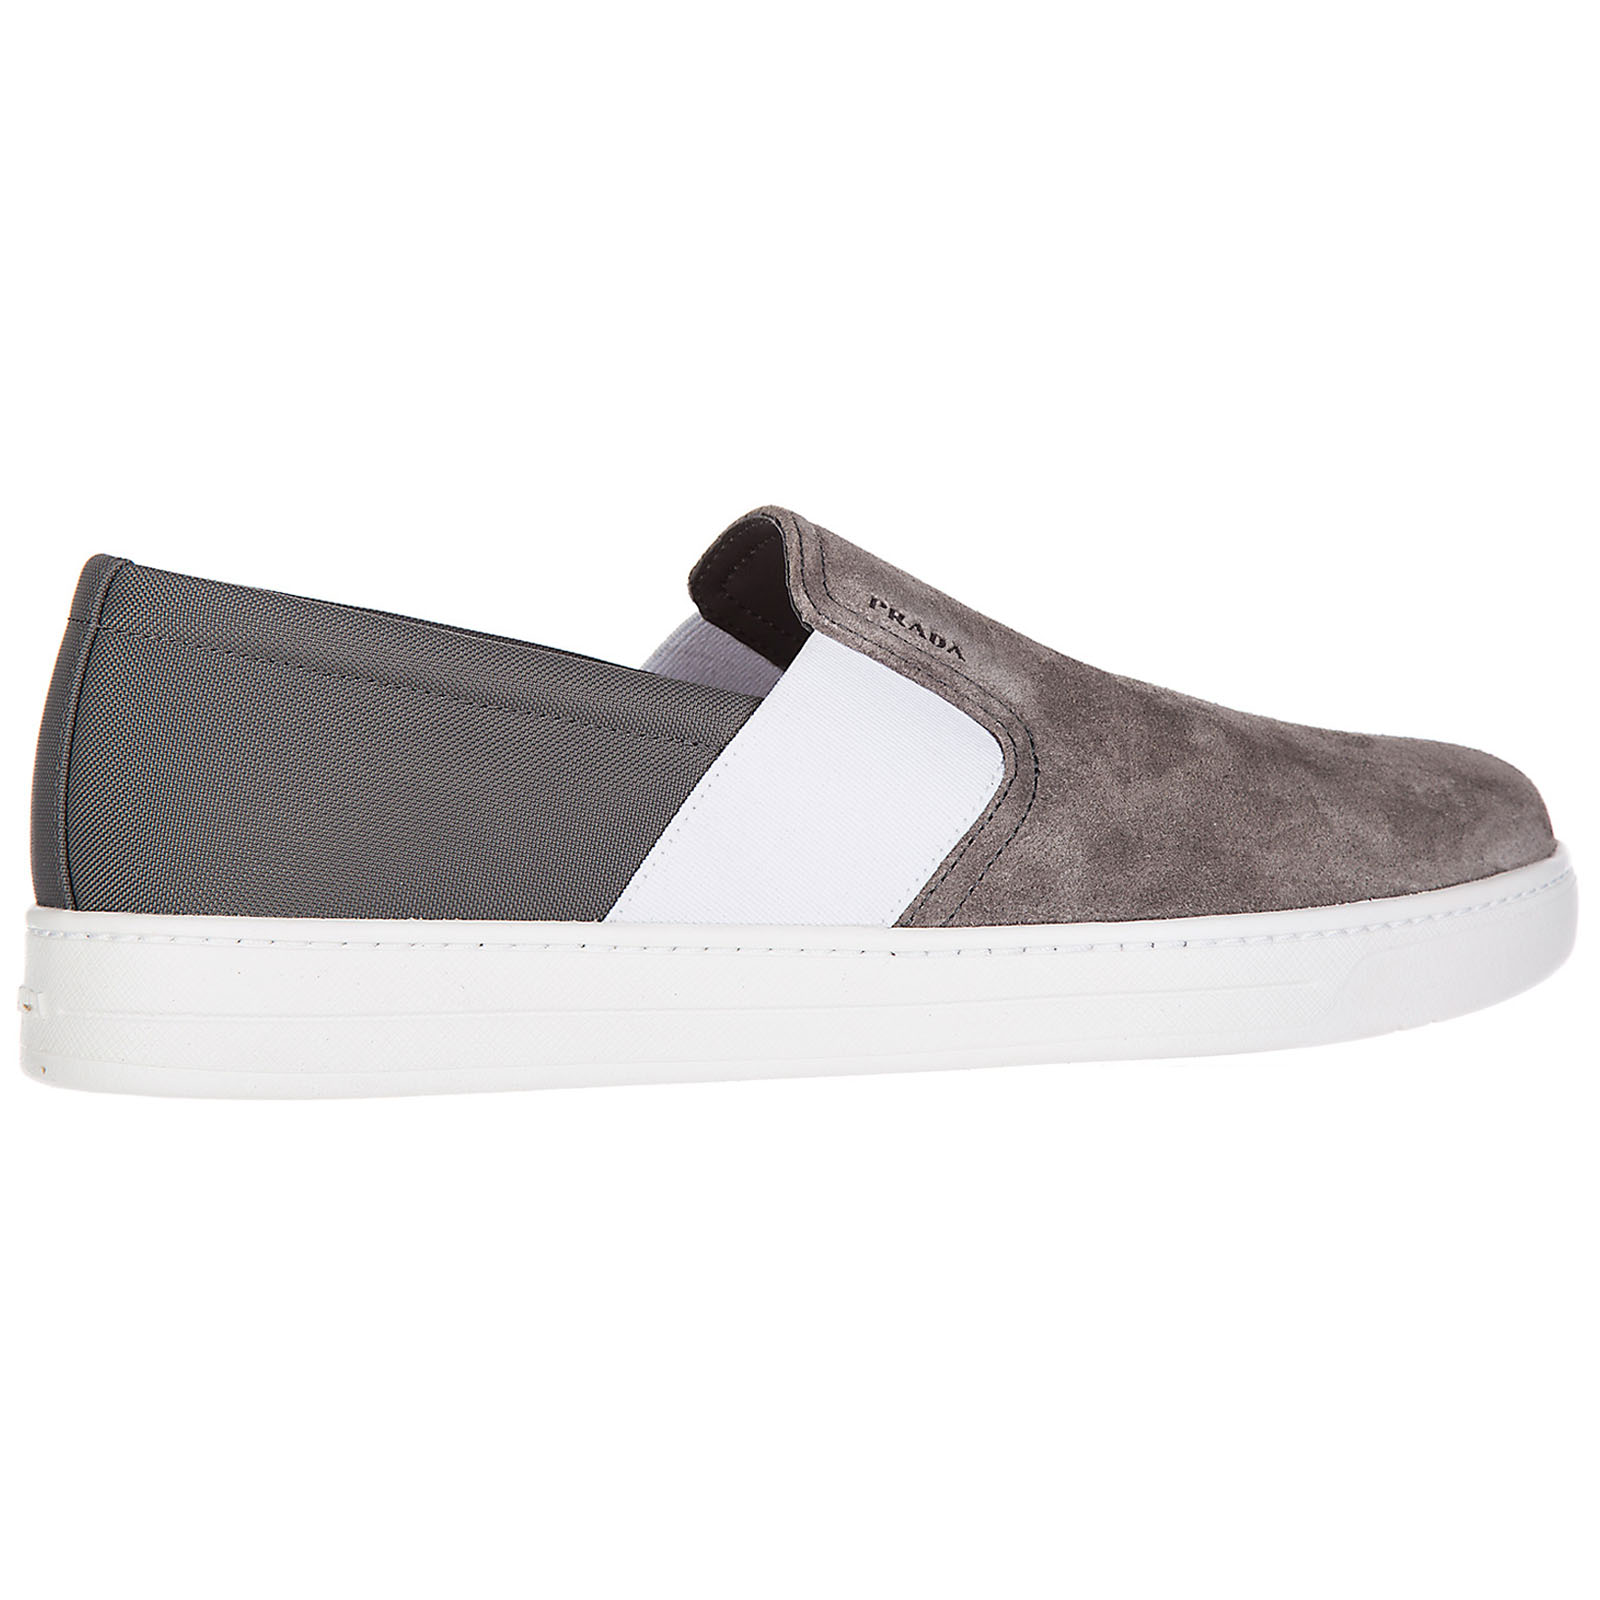 Men's suede slip on sneakers  scamosciato ny